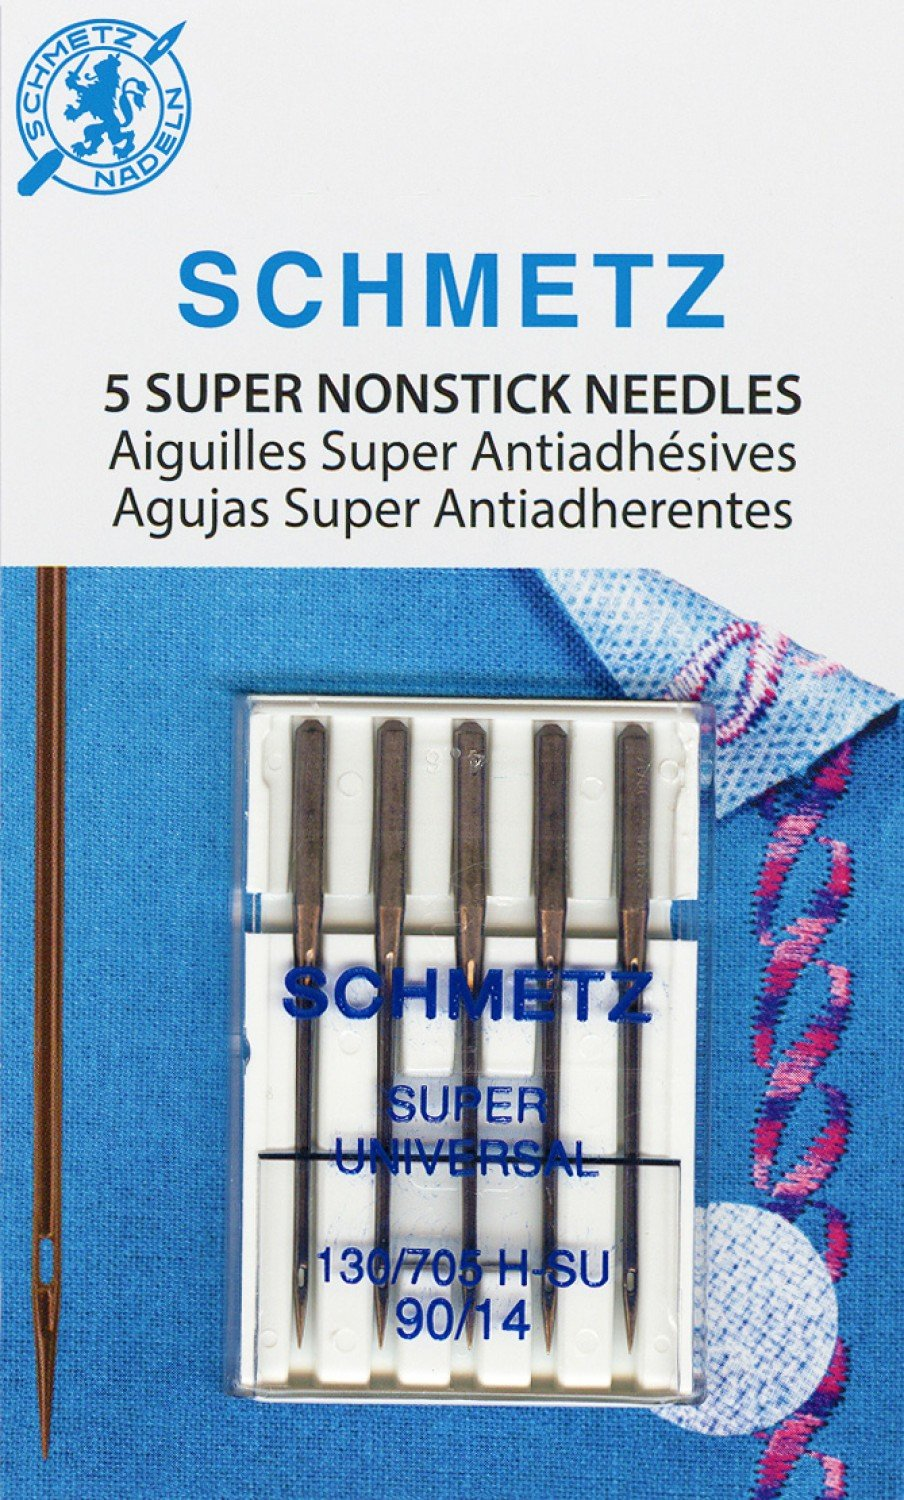 Schmetz Super Nonstick Needle 5ct, Size 90/14 - 4503